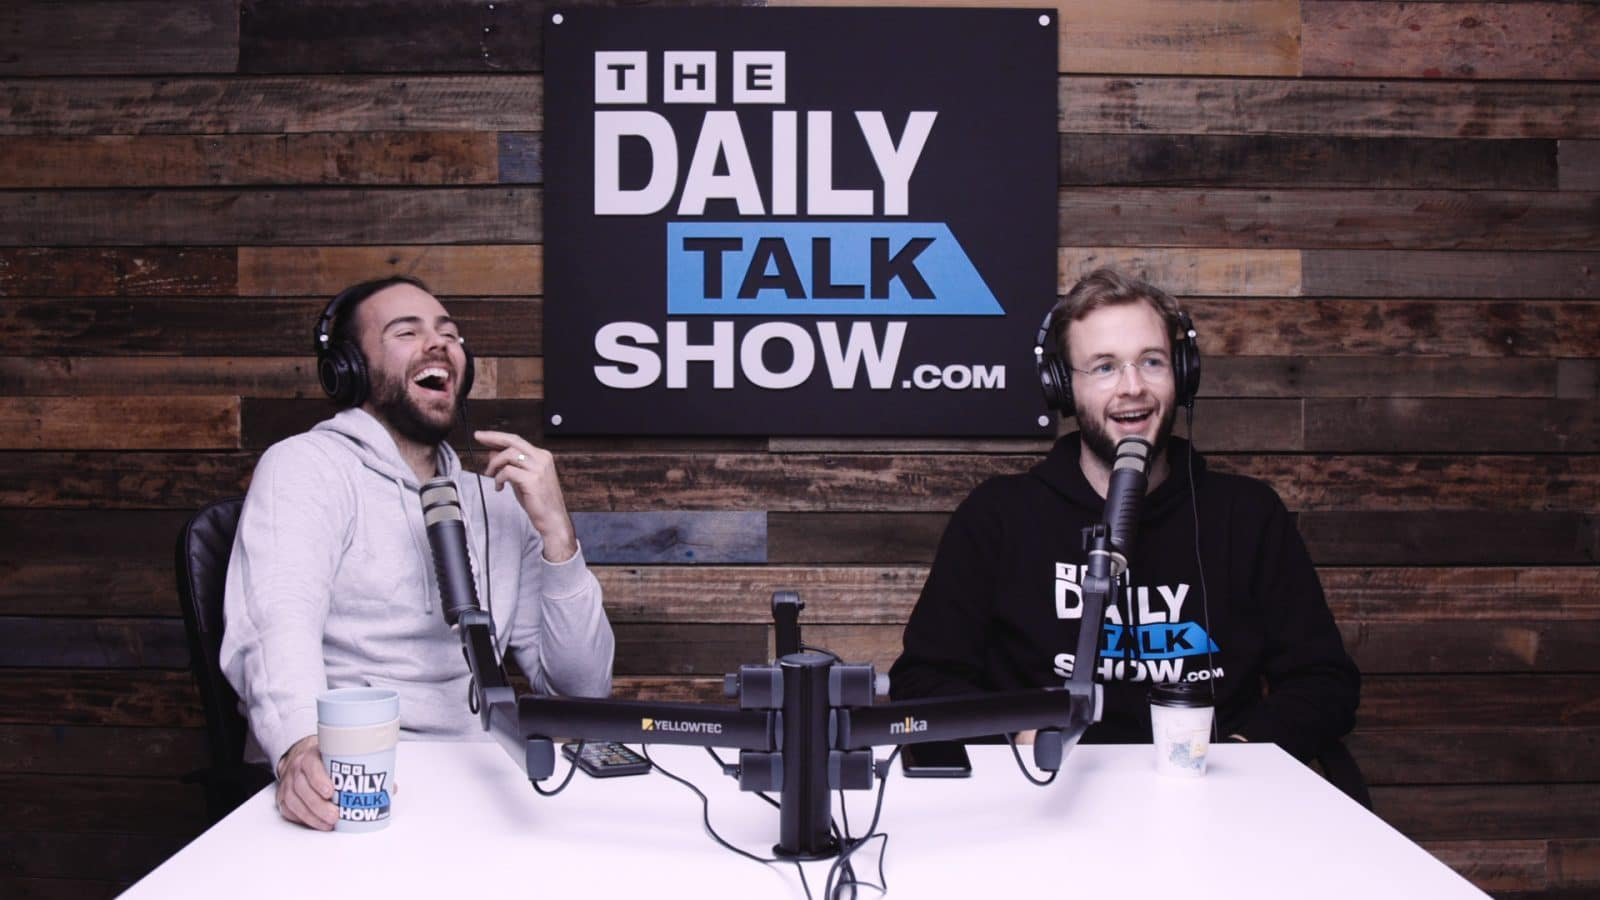 The-Daily-Talk-Show-437